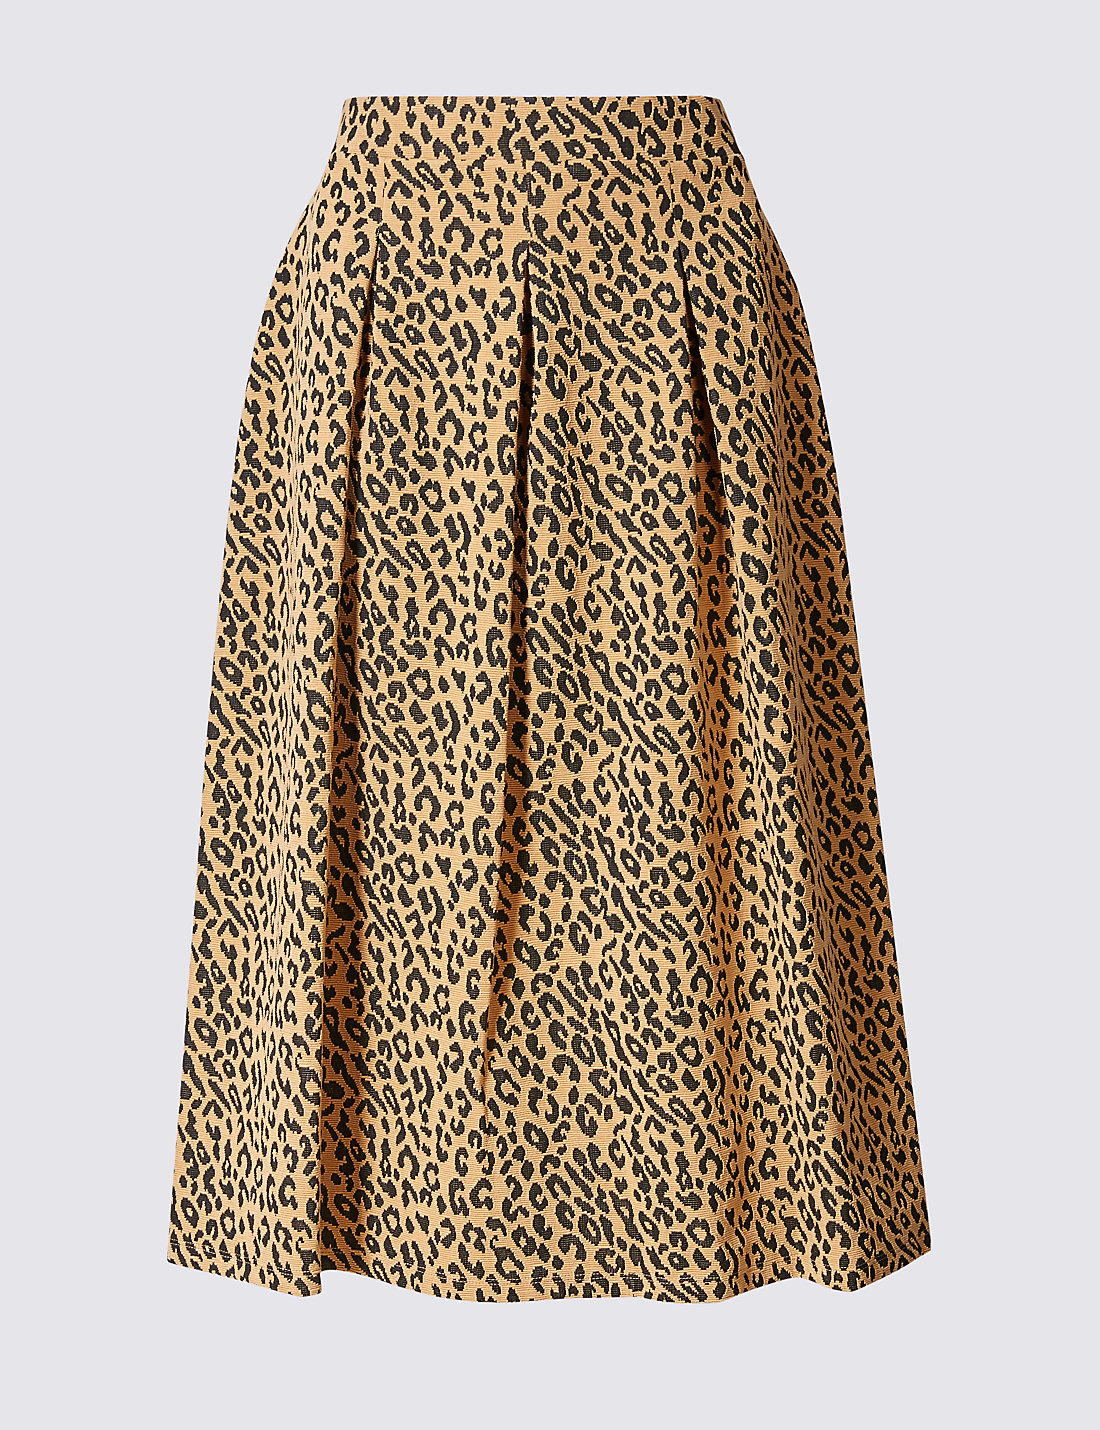 Animal Print A-Line Midi Skirt | M&S